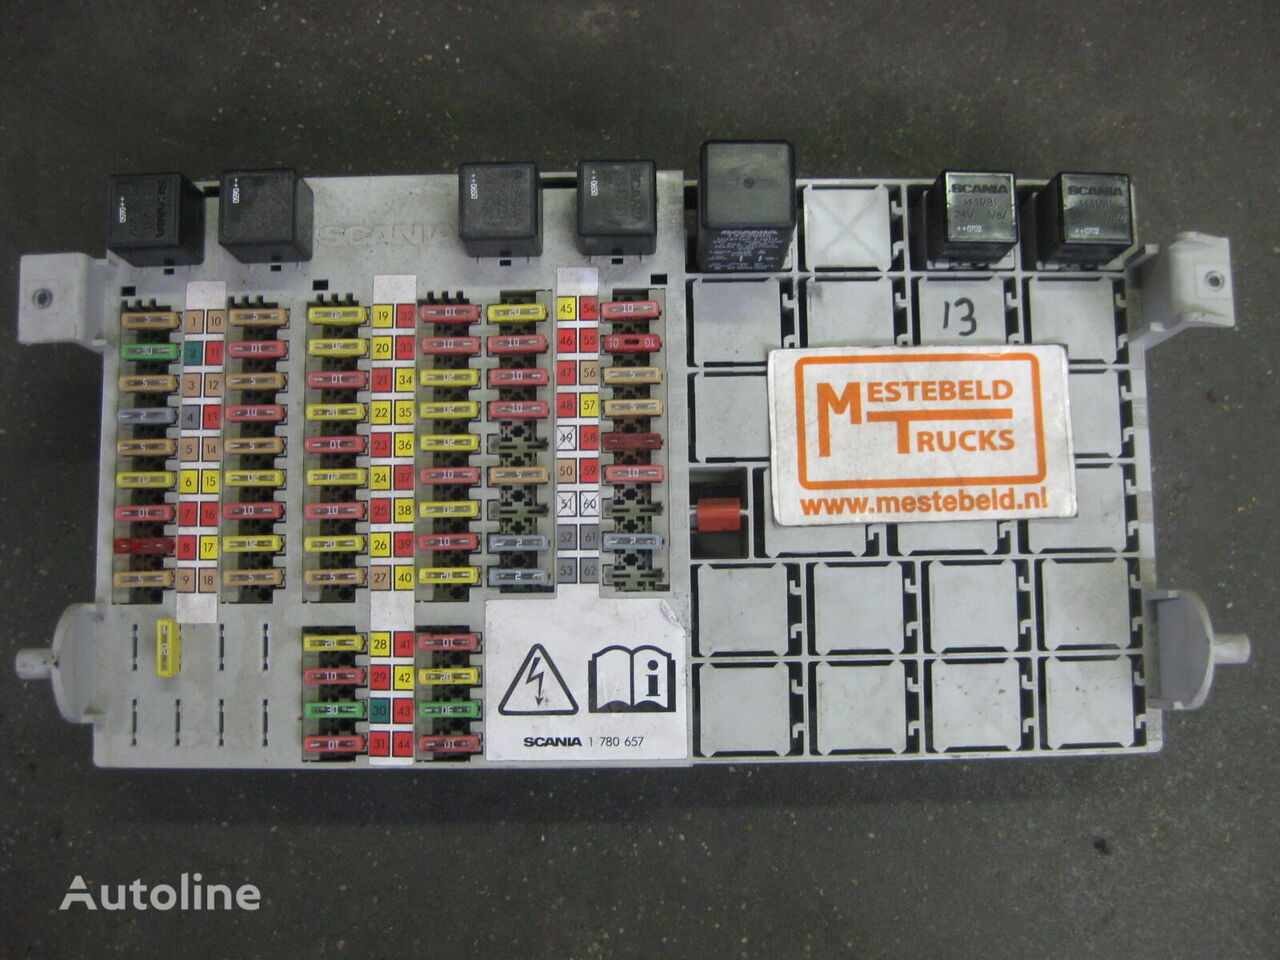 spare part fuse blockSCANIA 1_big 17030304082156224100 scania fuse blocks for scania truck for sale from the netherlands scania r series fuse box layout at gsmportal.co